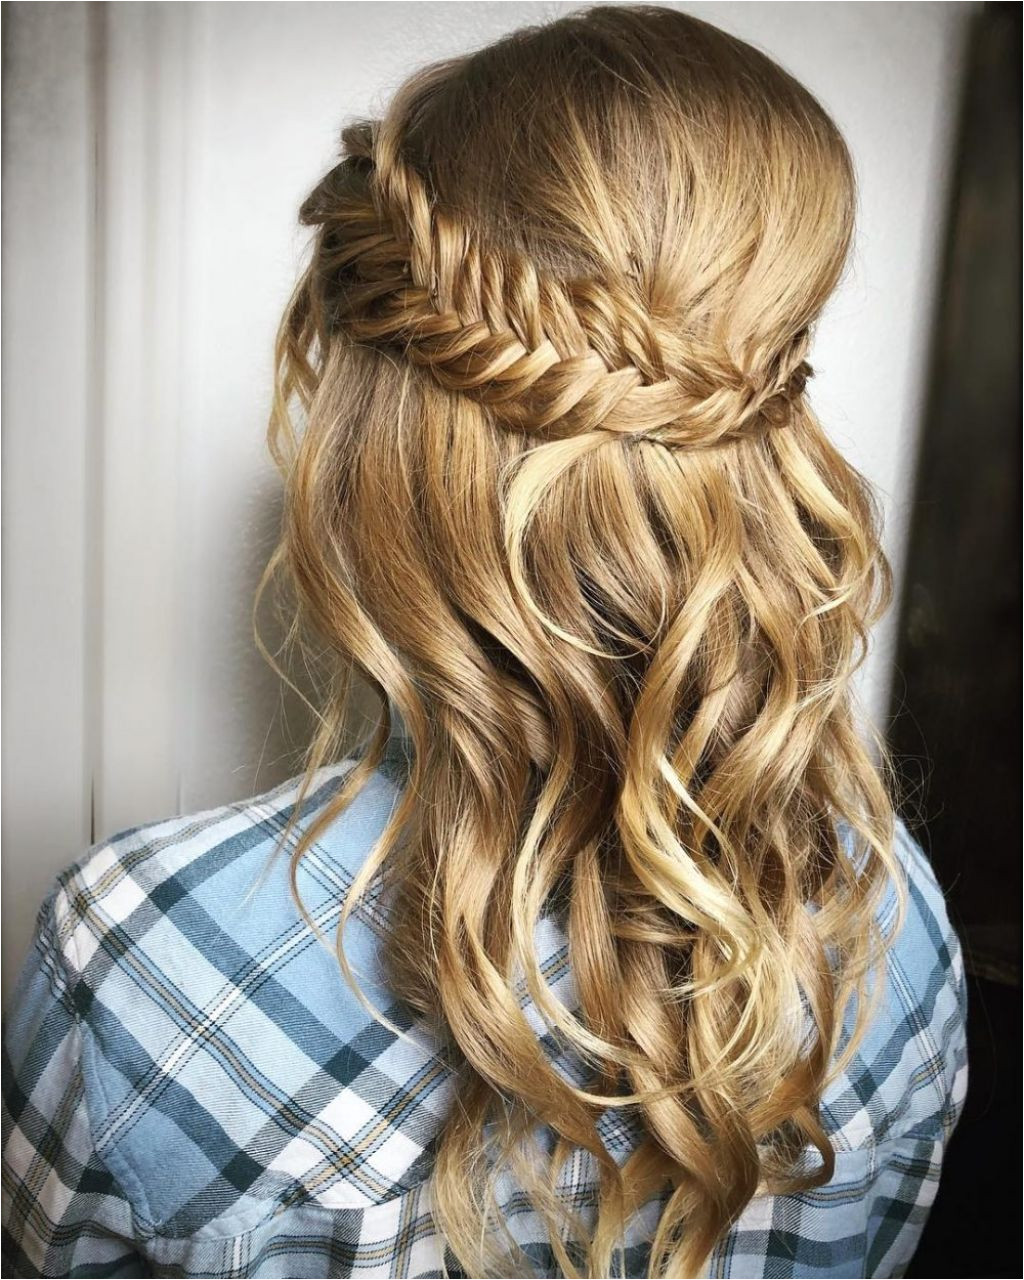 Prom hairstyles for long hair half up half down to an idea how to create prom hairstyles 20